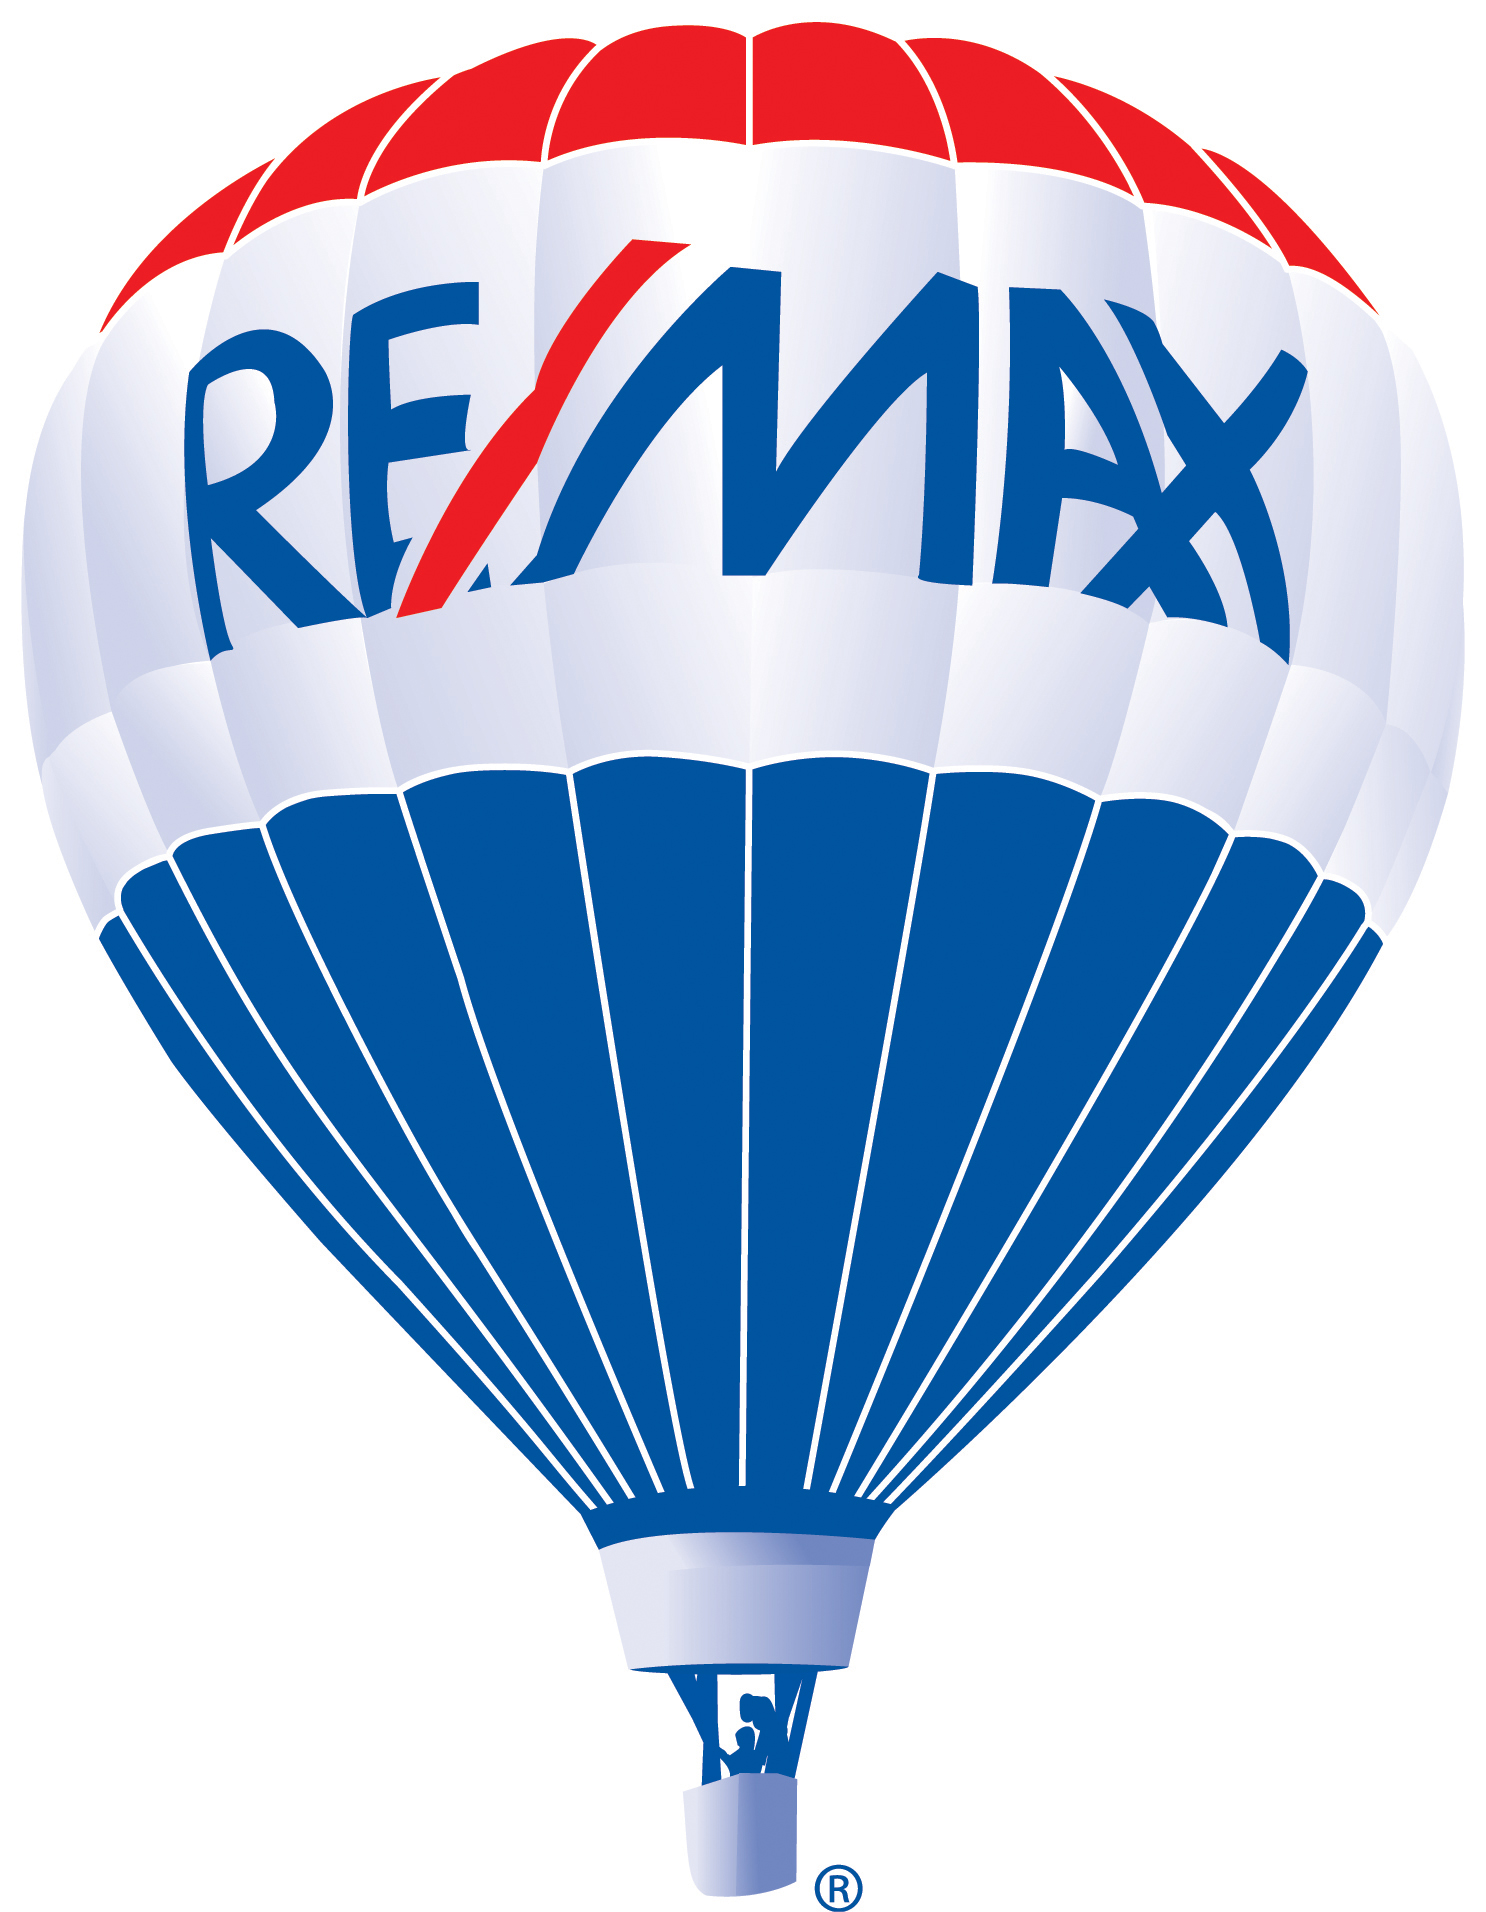 REMAX Balloon.jpg